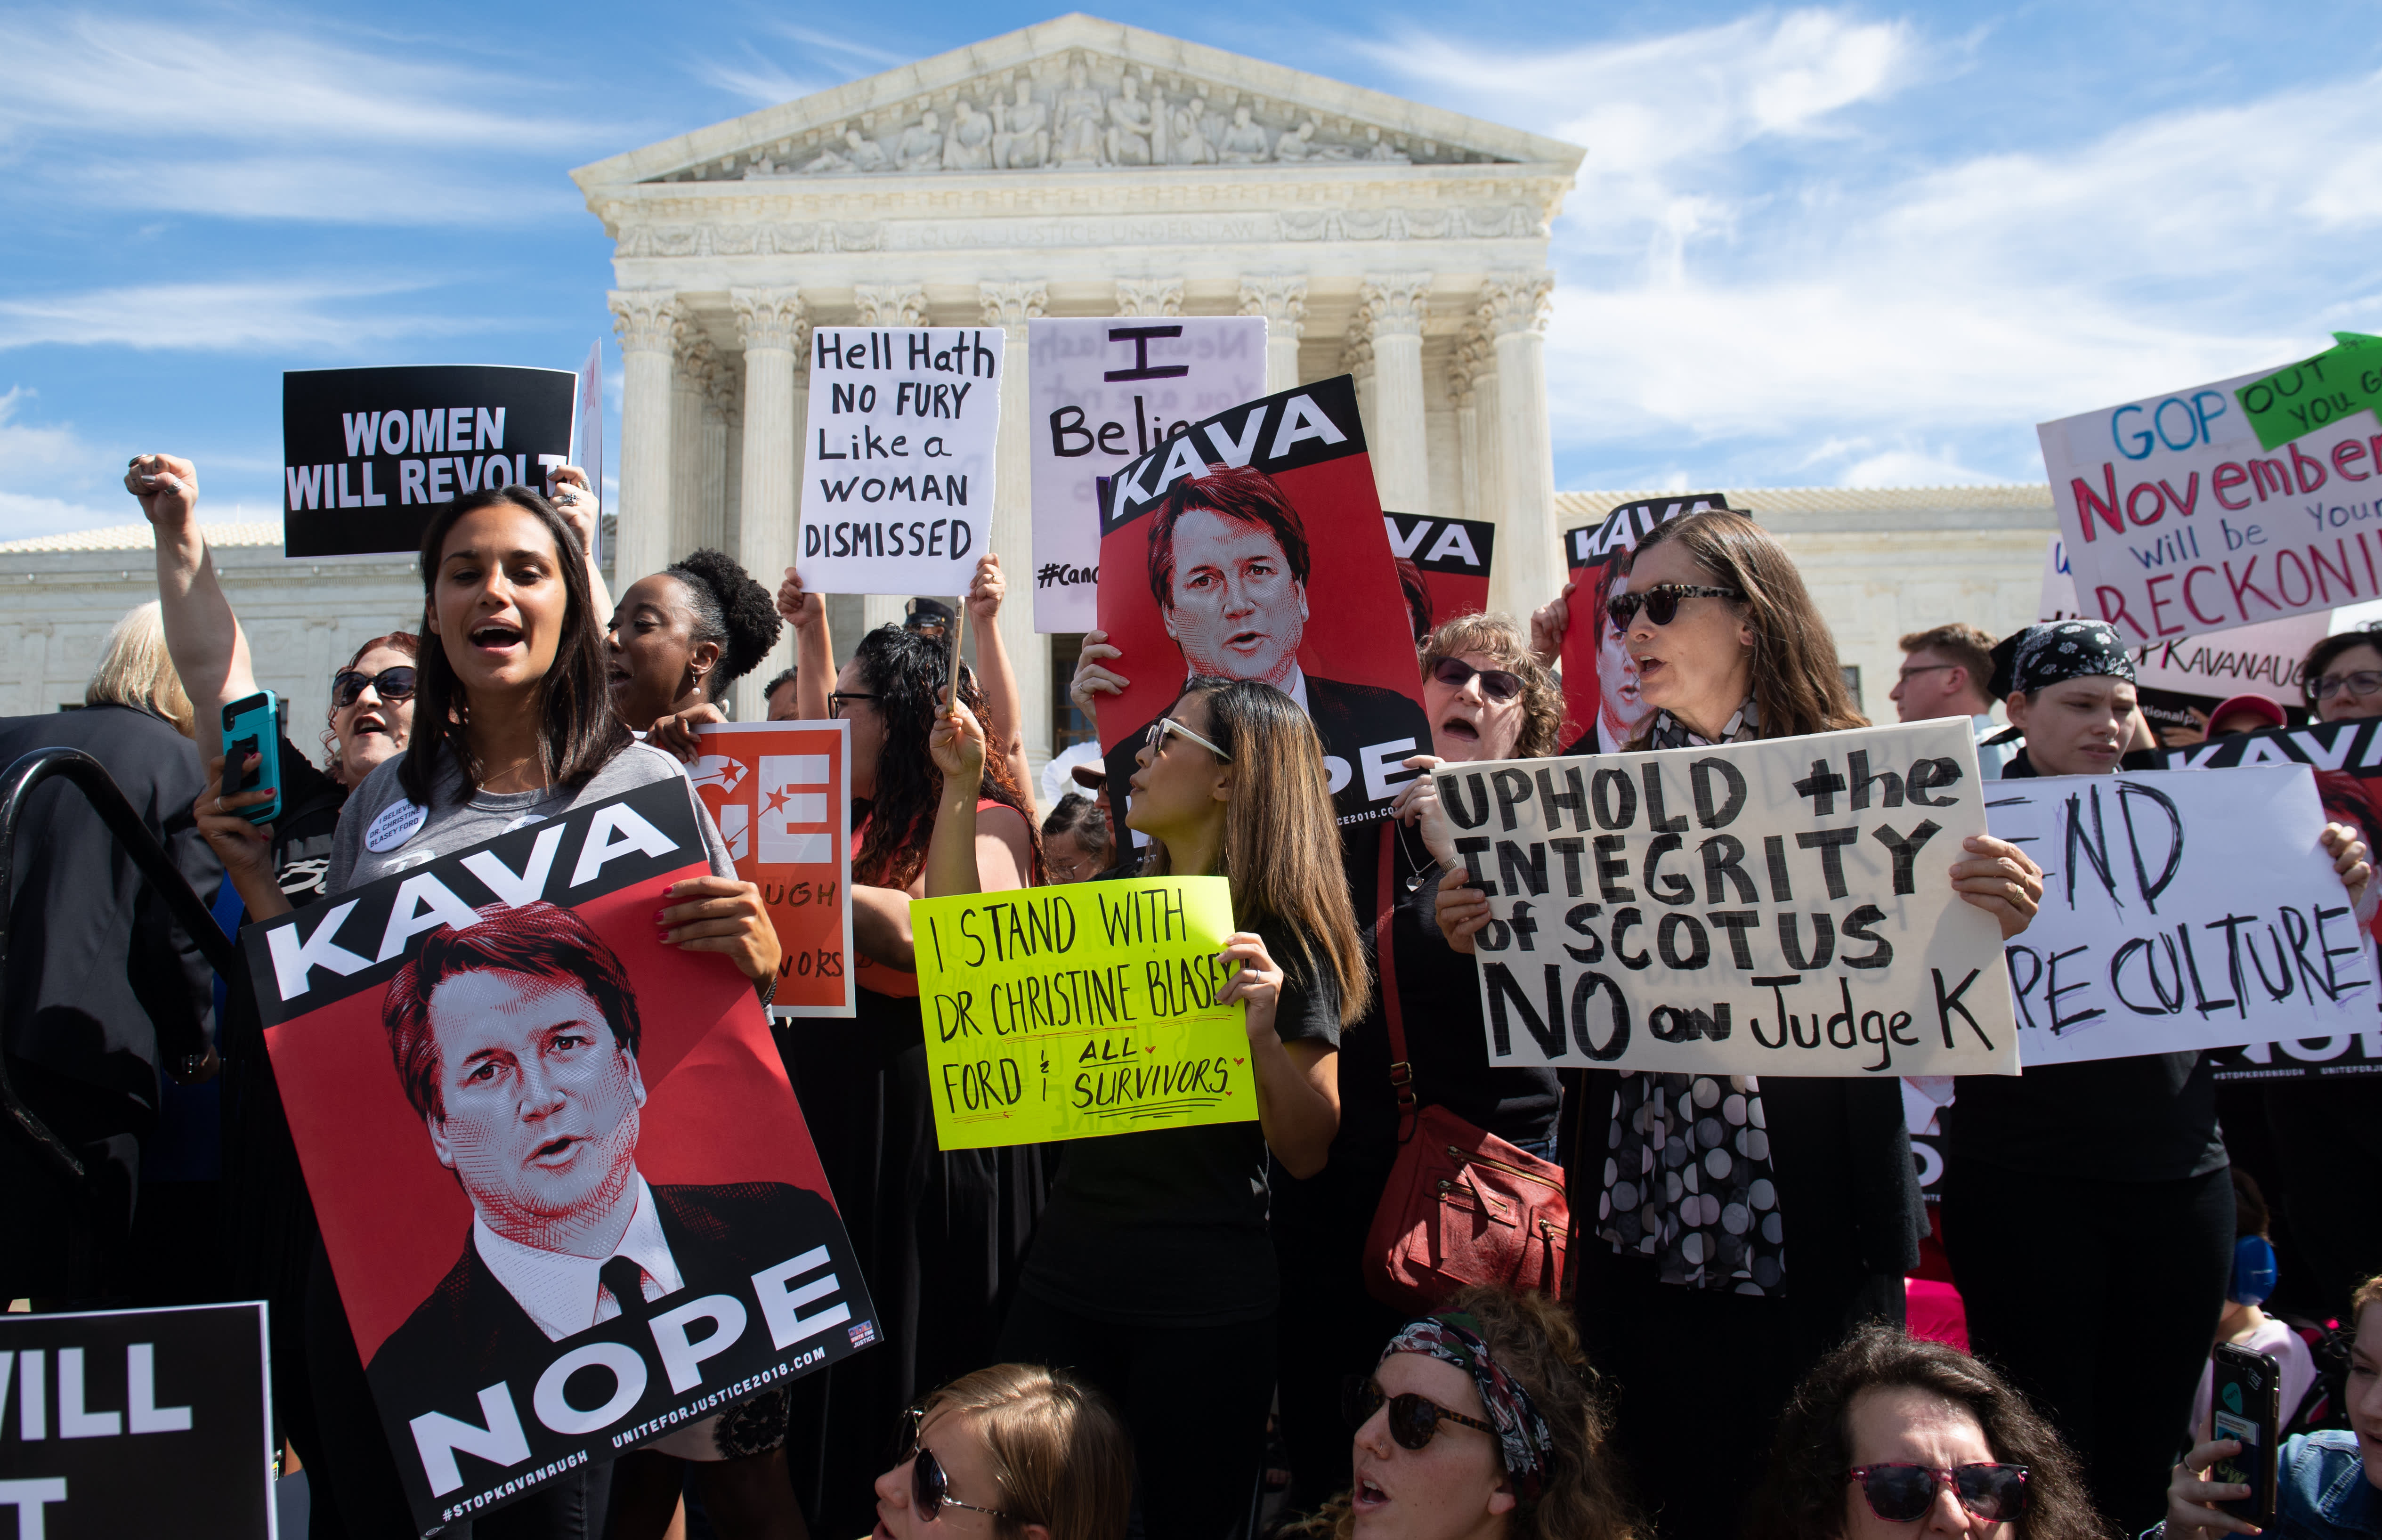 Why Theres Uproar Over Trying To >> Supreme Court To Hear Arguments Amid Uproar Over Brett Kavanaugh